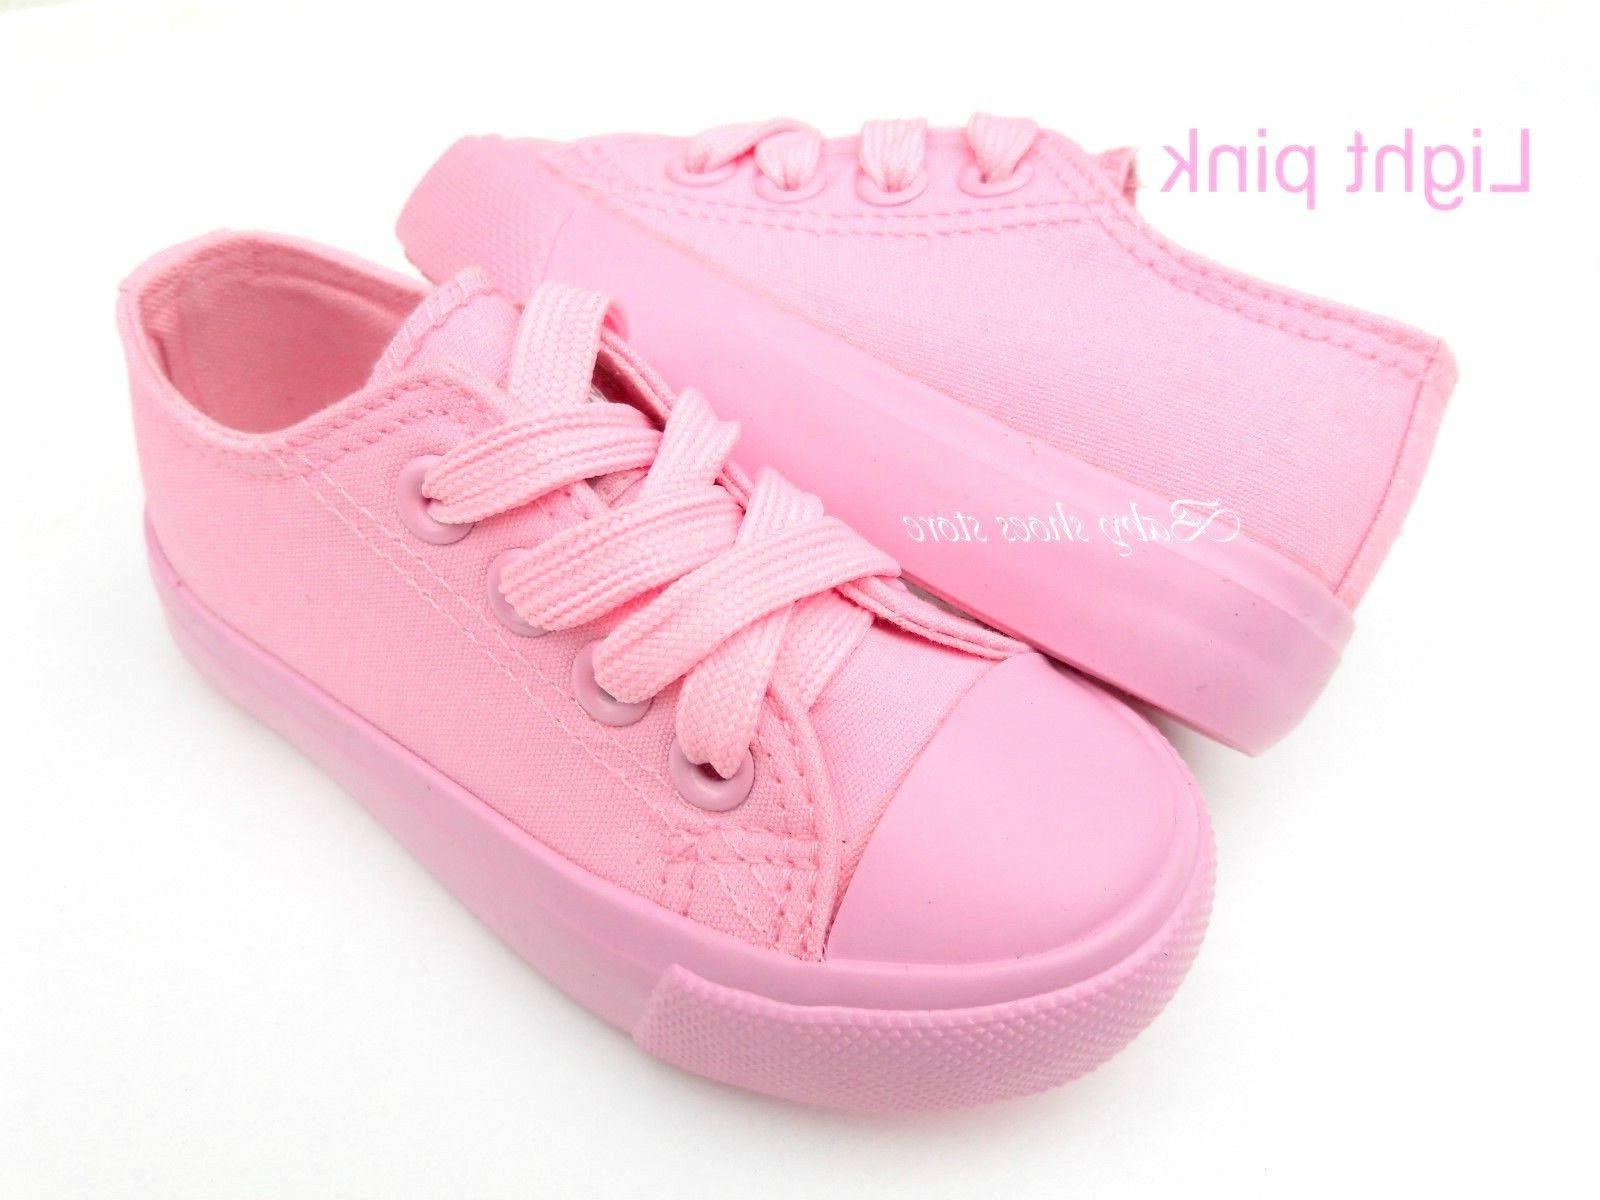 Toddler boys girls canvas shoes